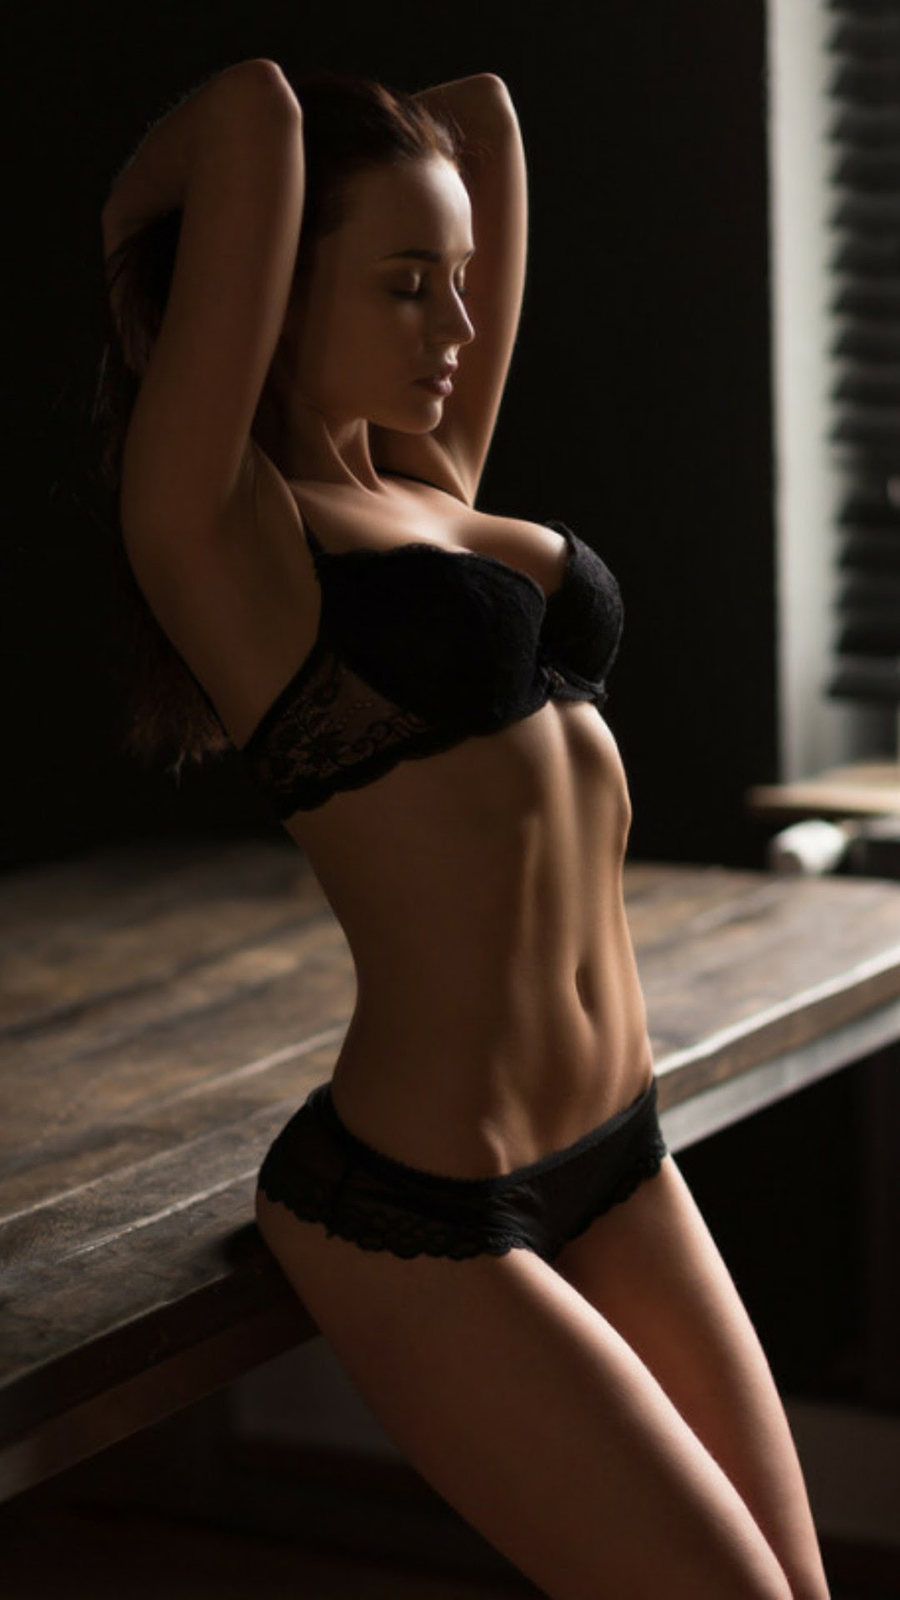 Fitness Girl 4K HD Wallpapers Free Download